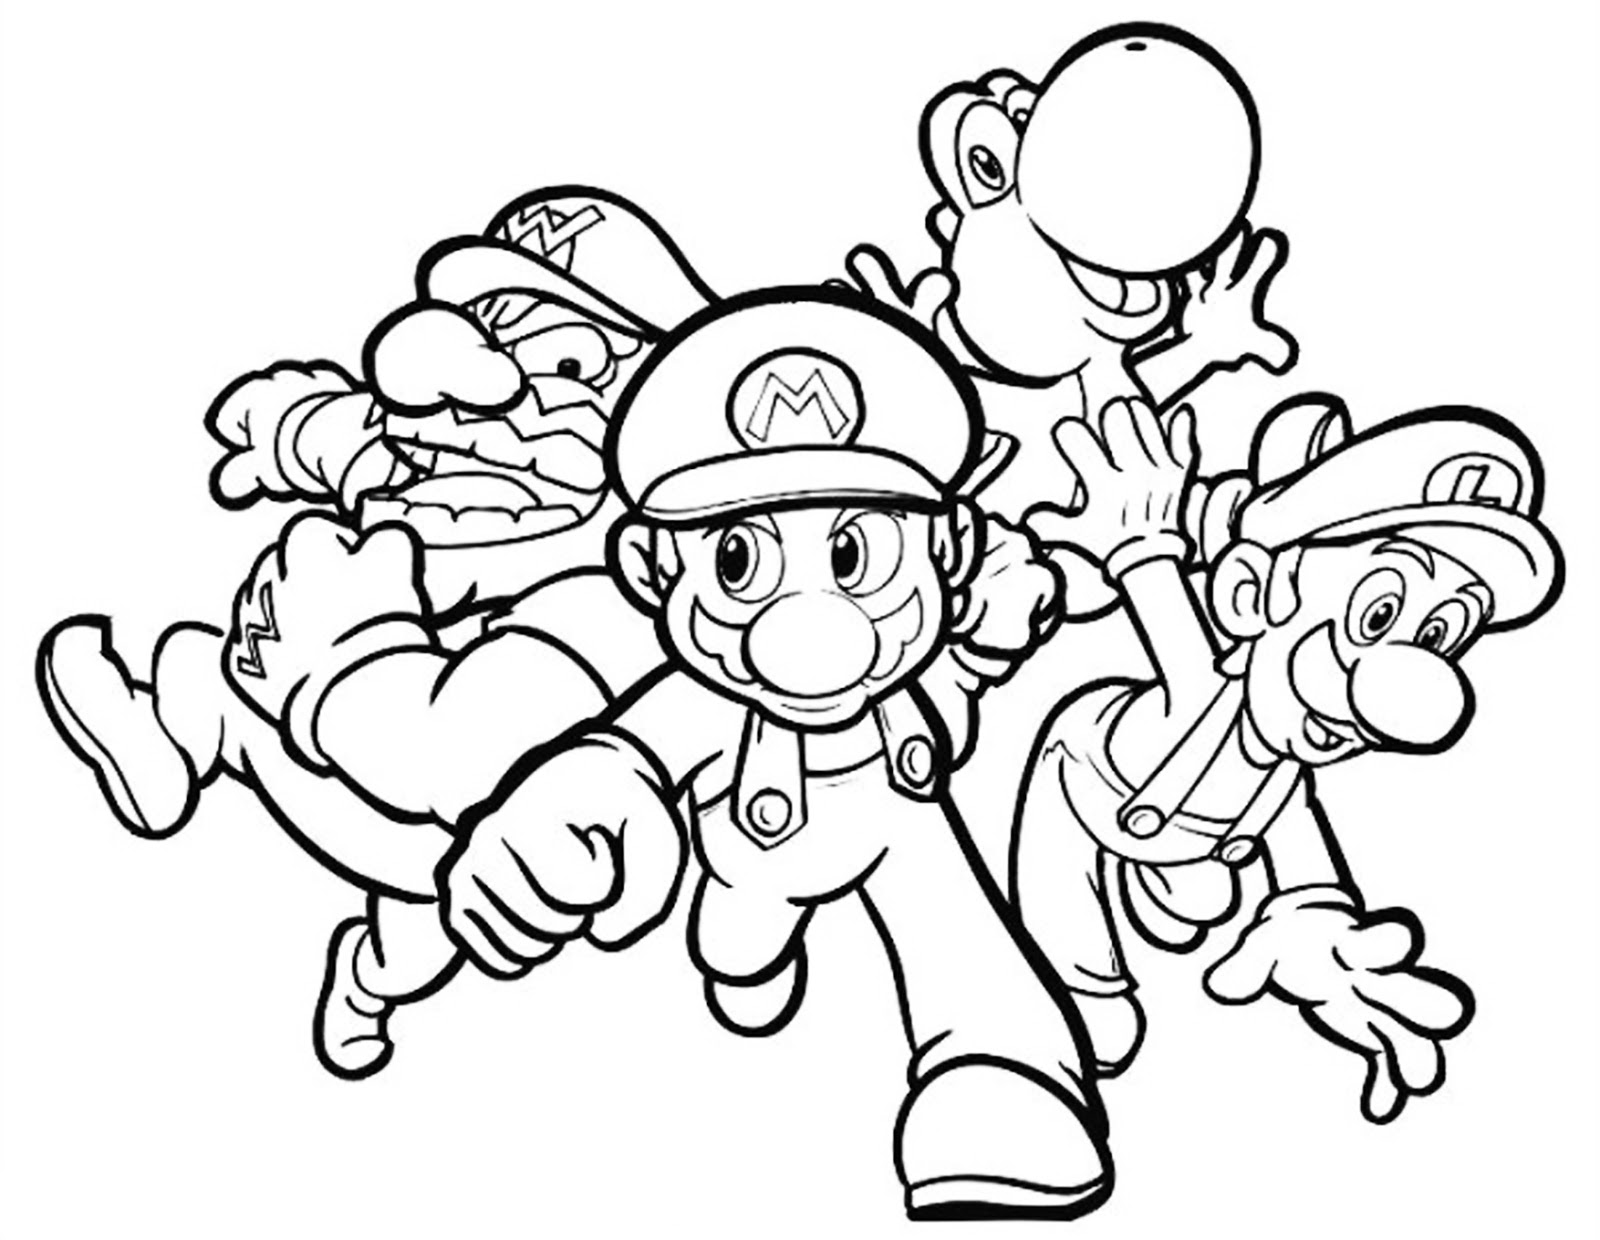 coloring games for adults click and print to a4 colouring page for adults games coloring